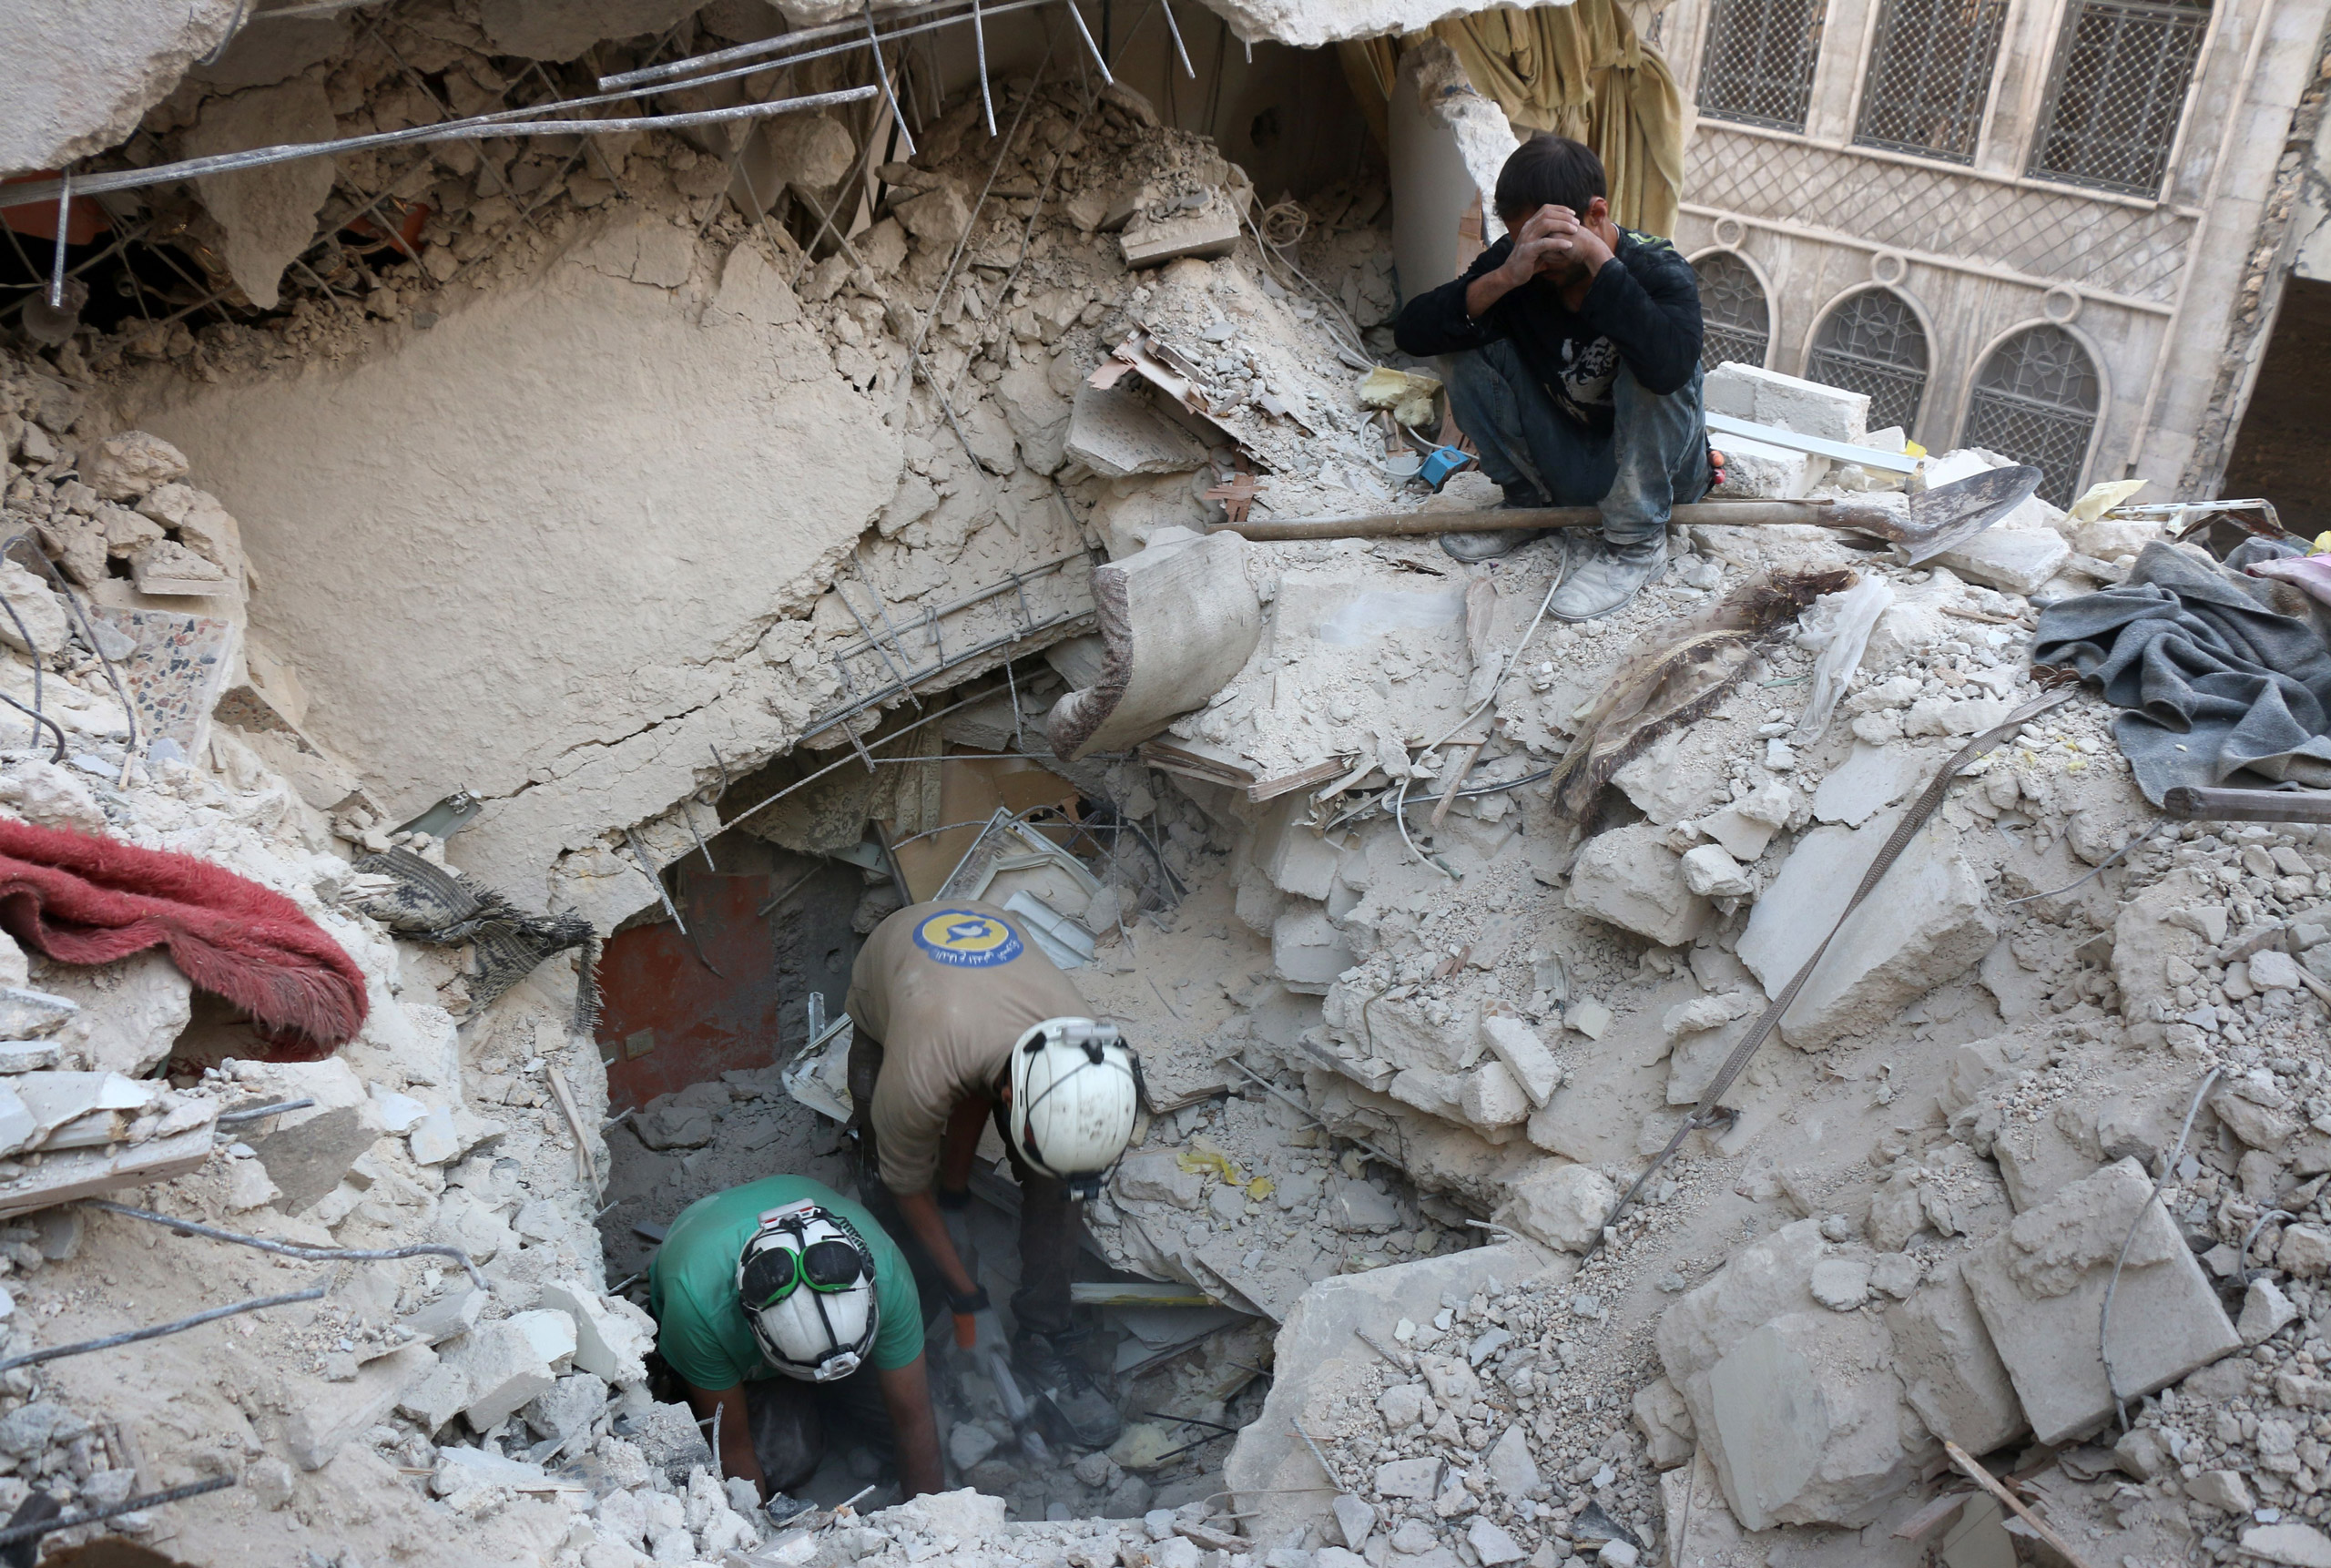 Syrian civil defence volunteers, known as the White Helmets, search for victims amid the rubble of destroyed buildings following a government forces air strike on the rebel-held neighborhood of Bustan al-Basha in Aleppo, on Oct. 4, 2016.